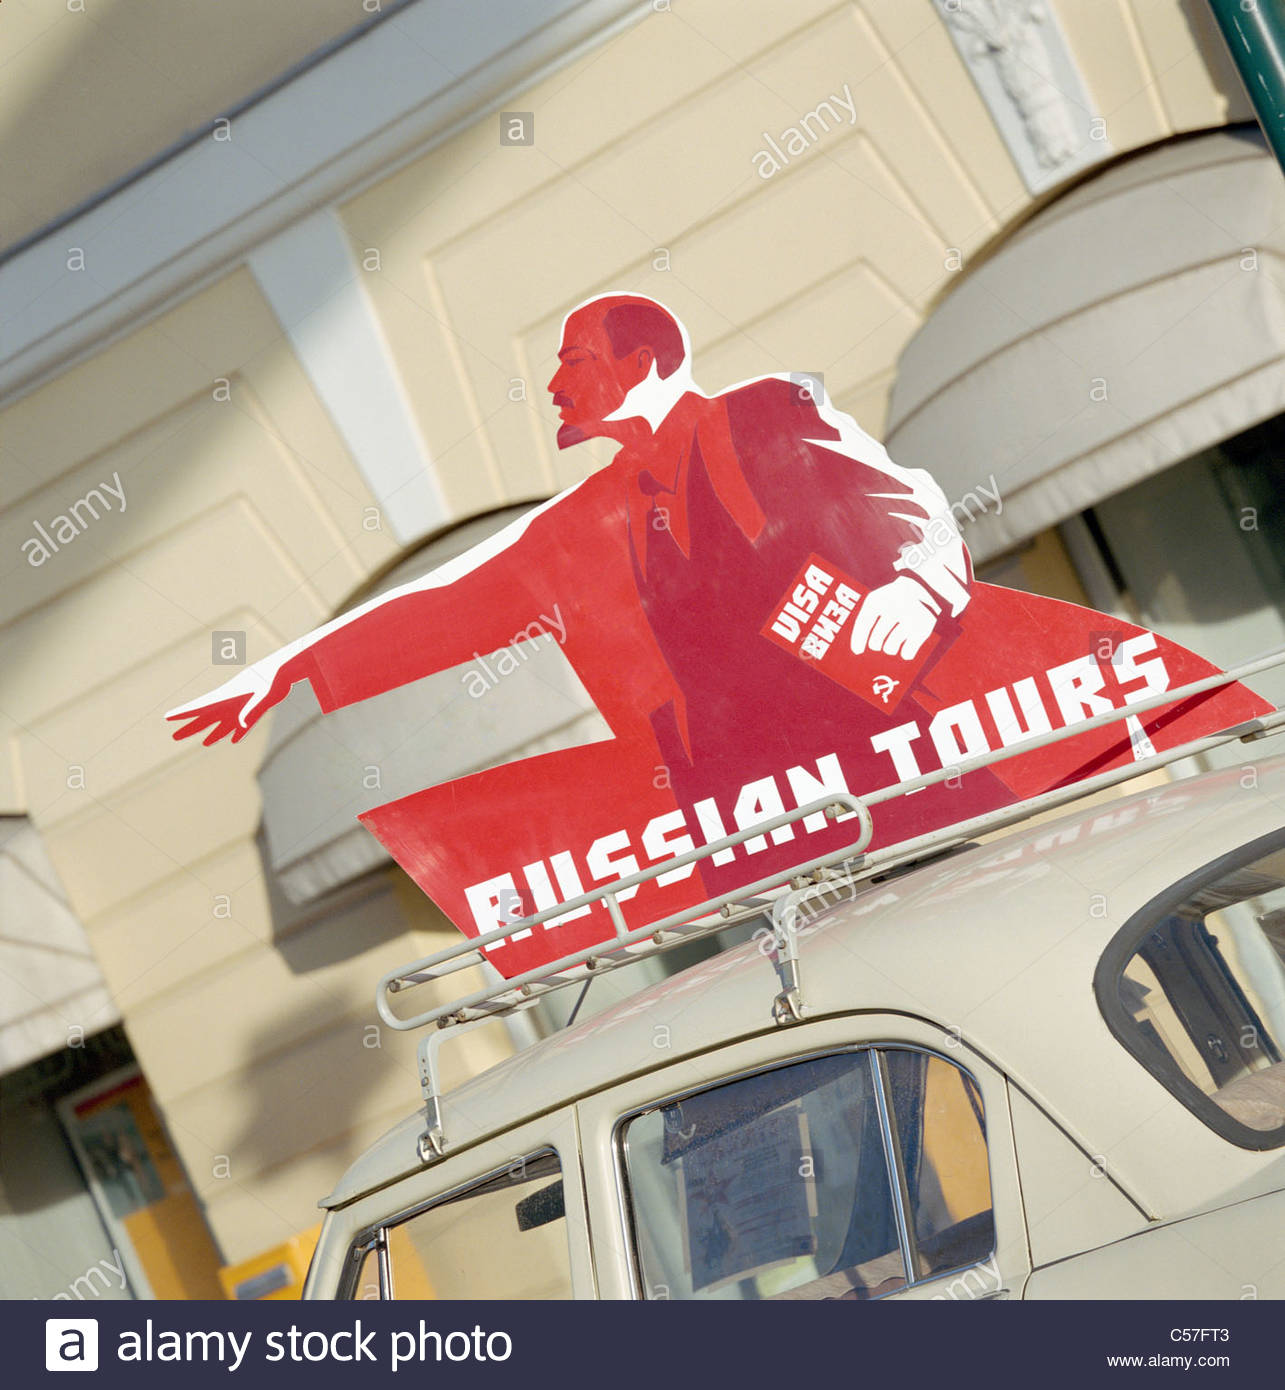 'Russian Tours' sign on top of car - Stock Image